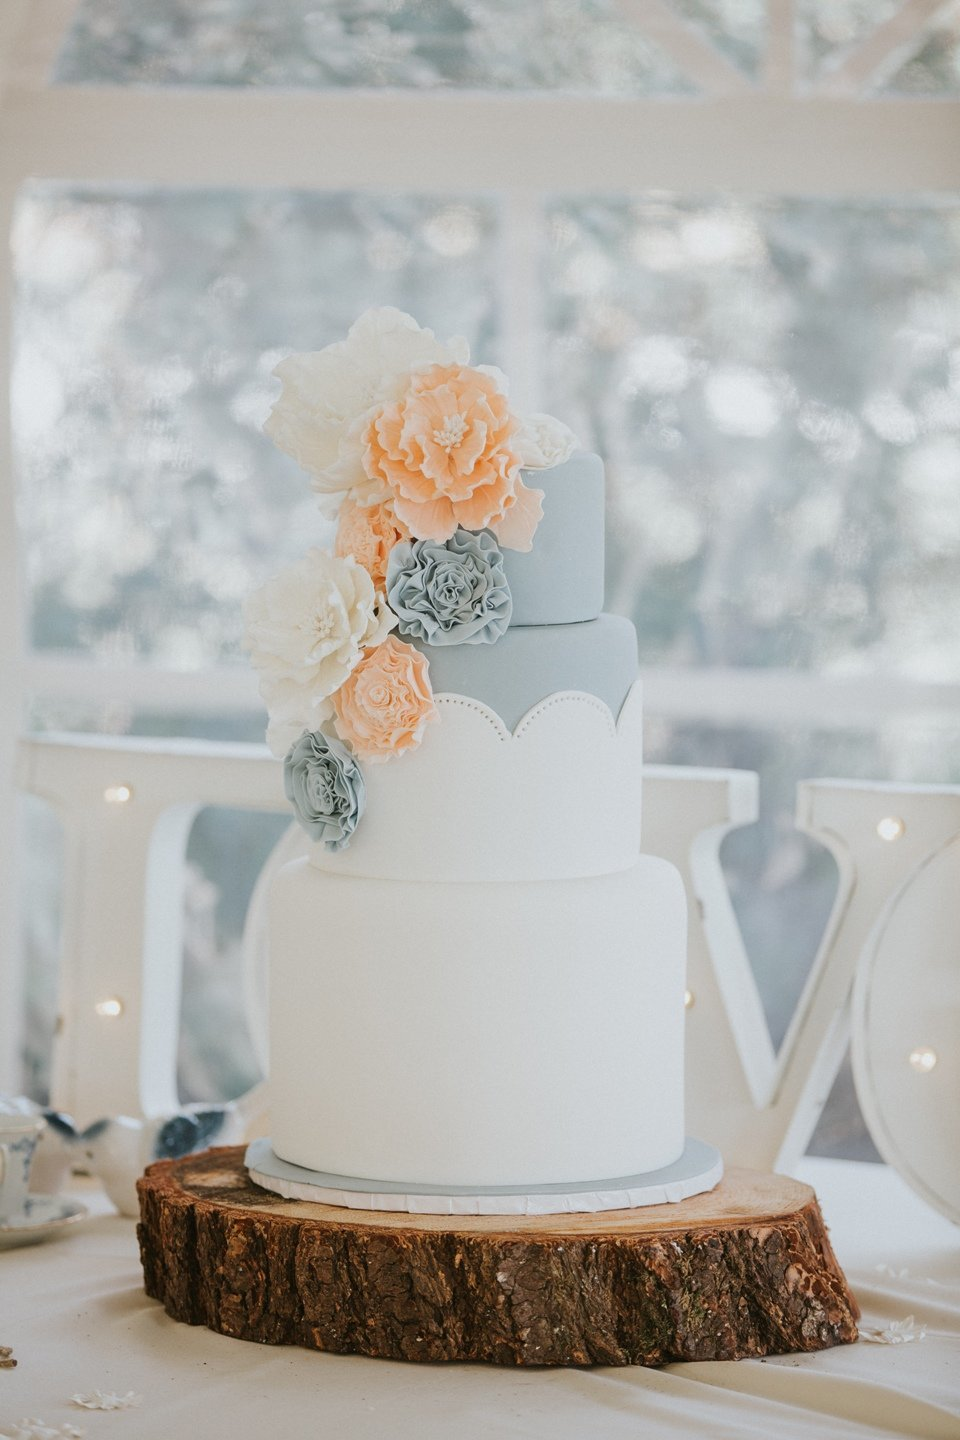 Whippt Wedding Cake - Credit Loree Photography2